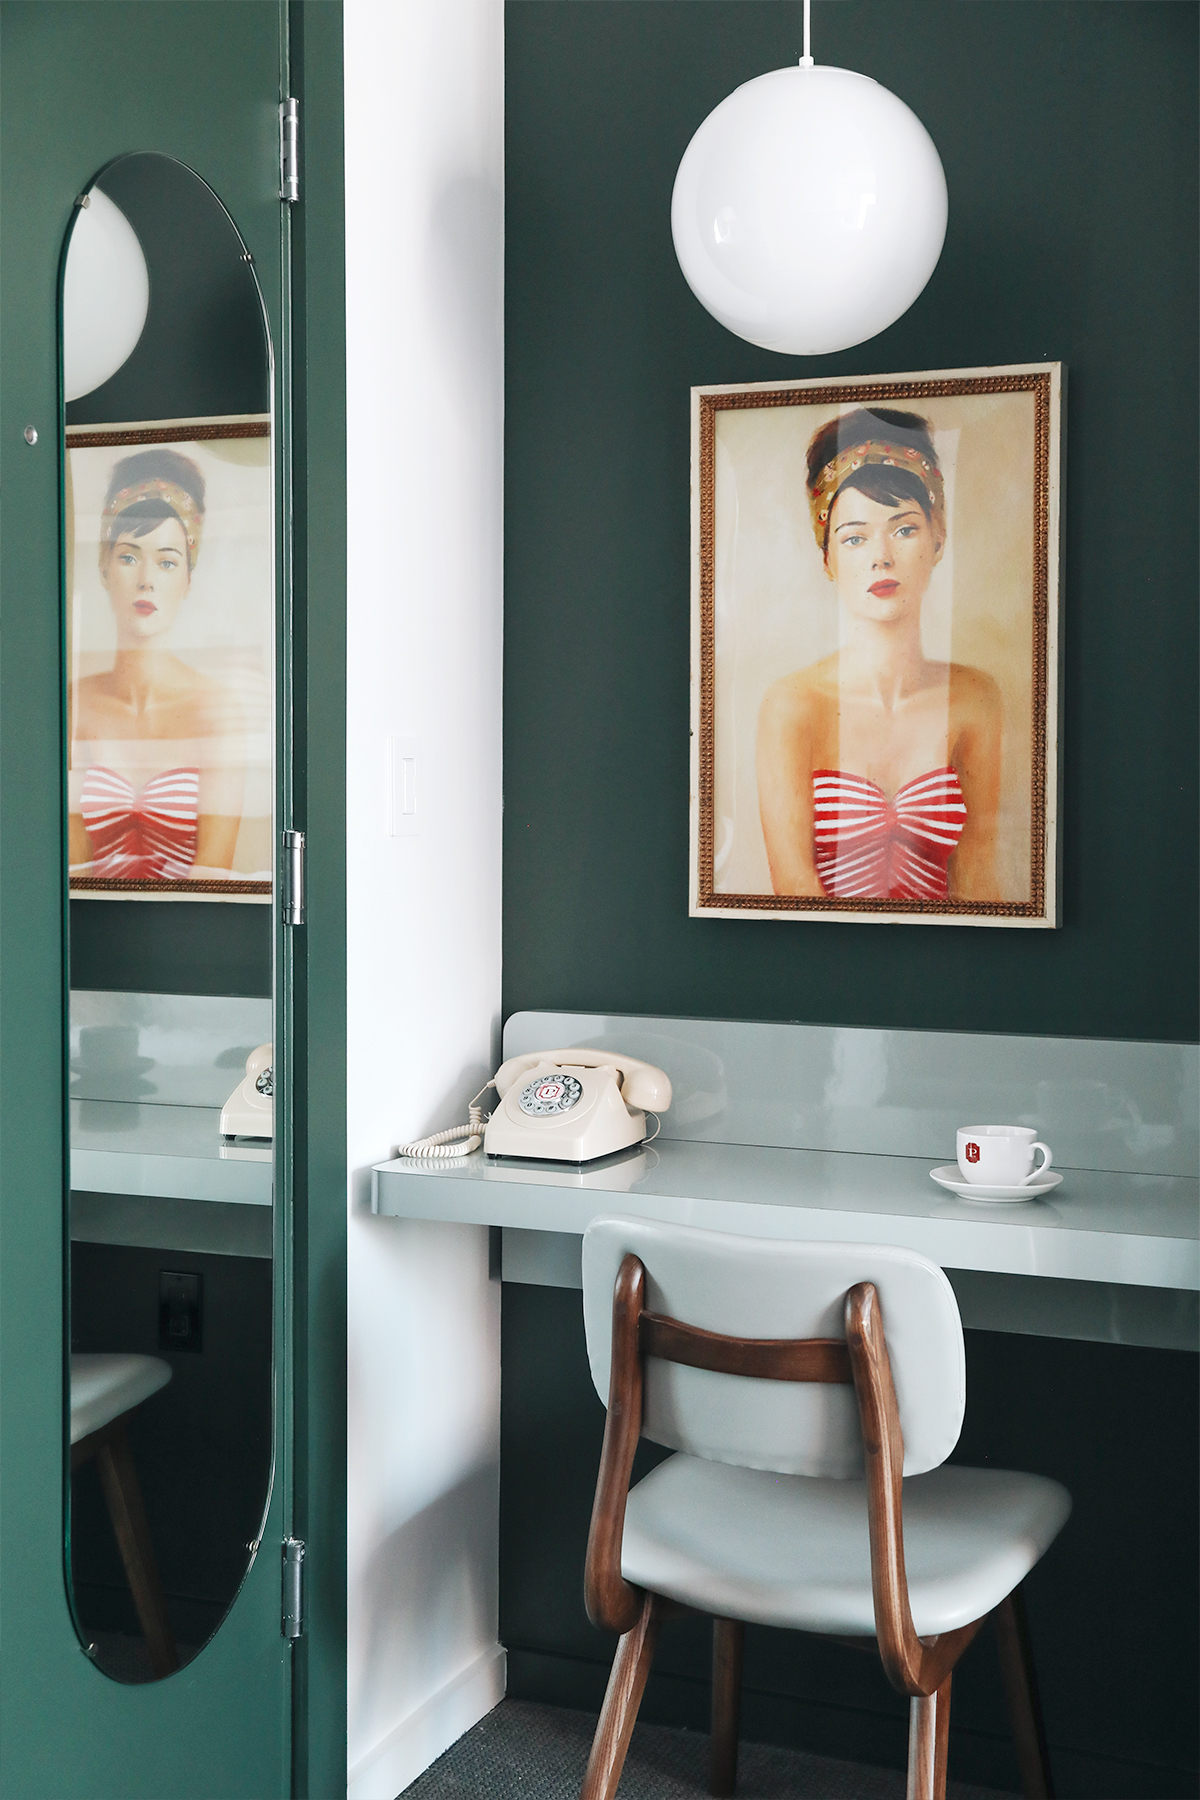 dark green walls with built-in desk and oval mirror